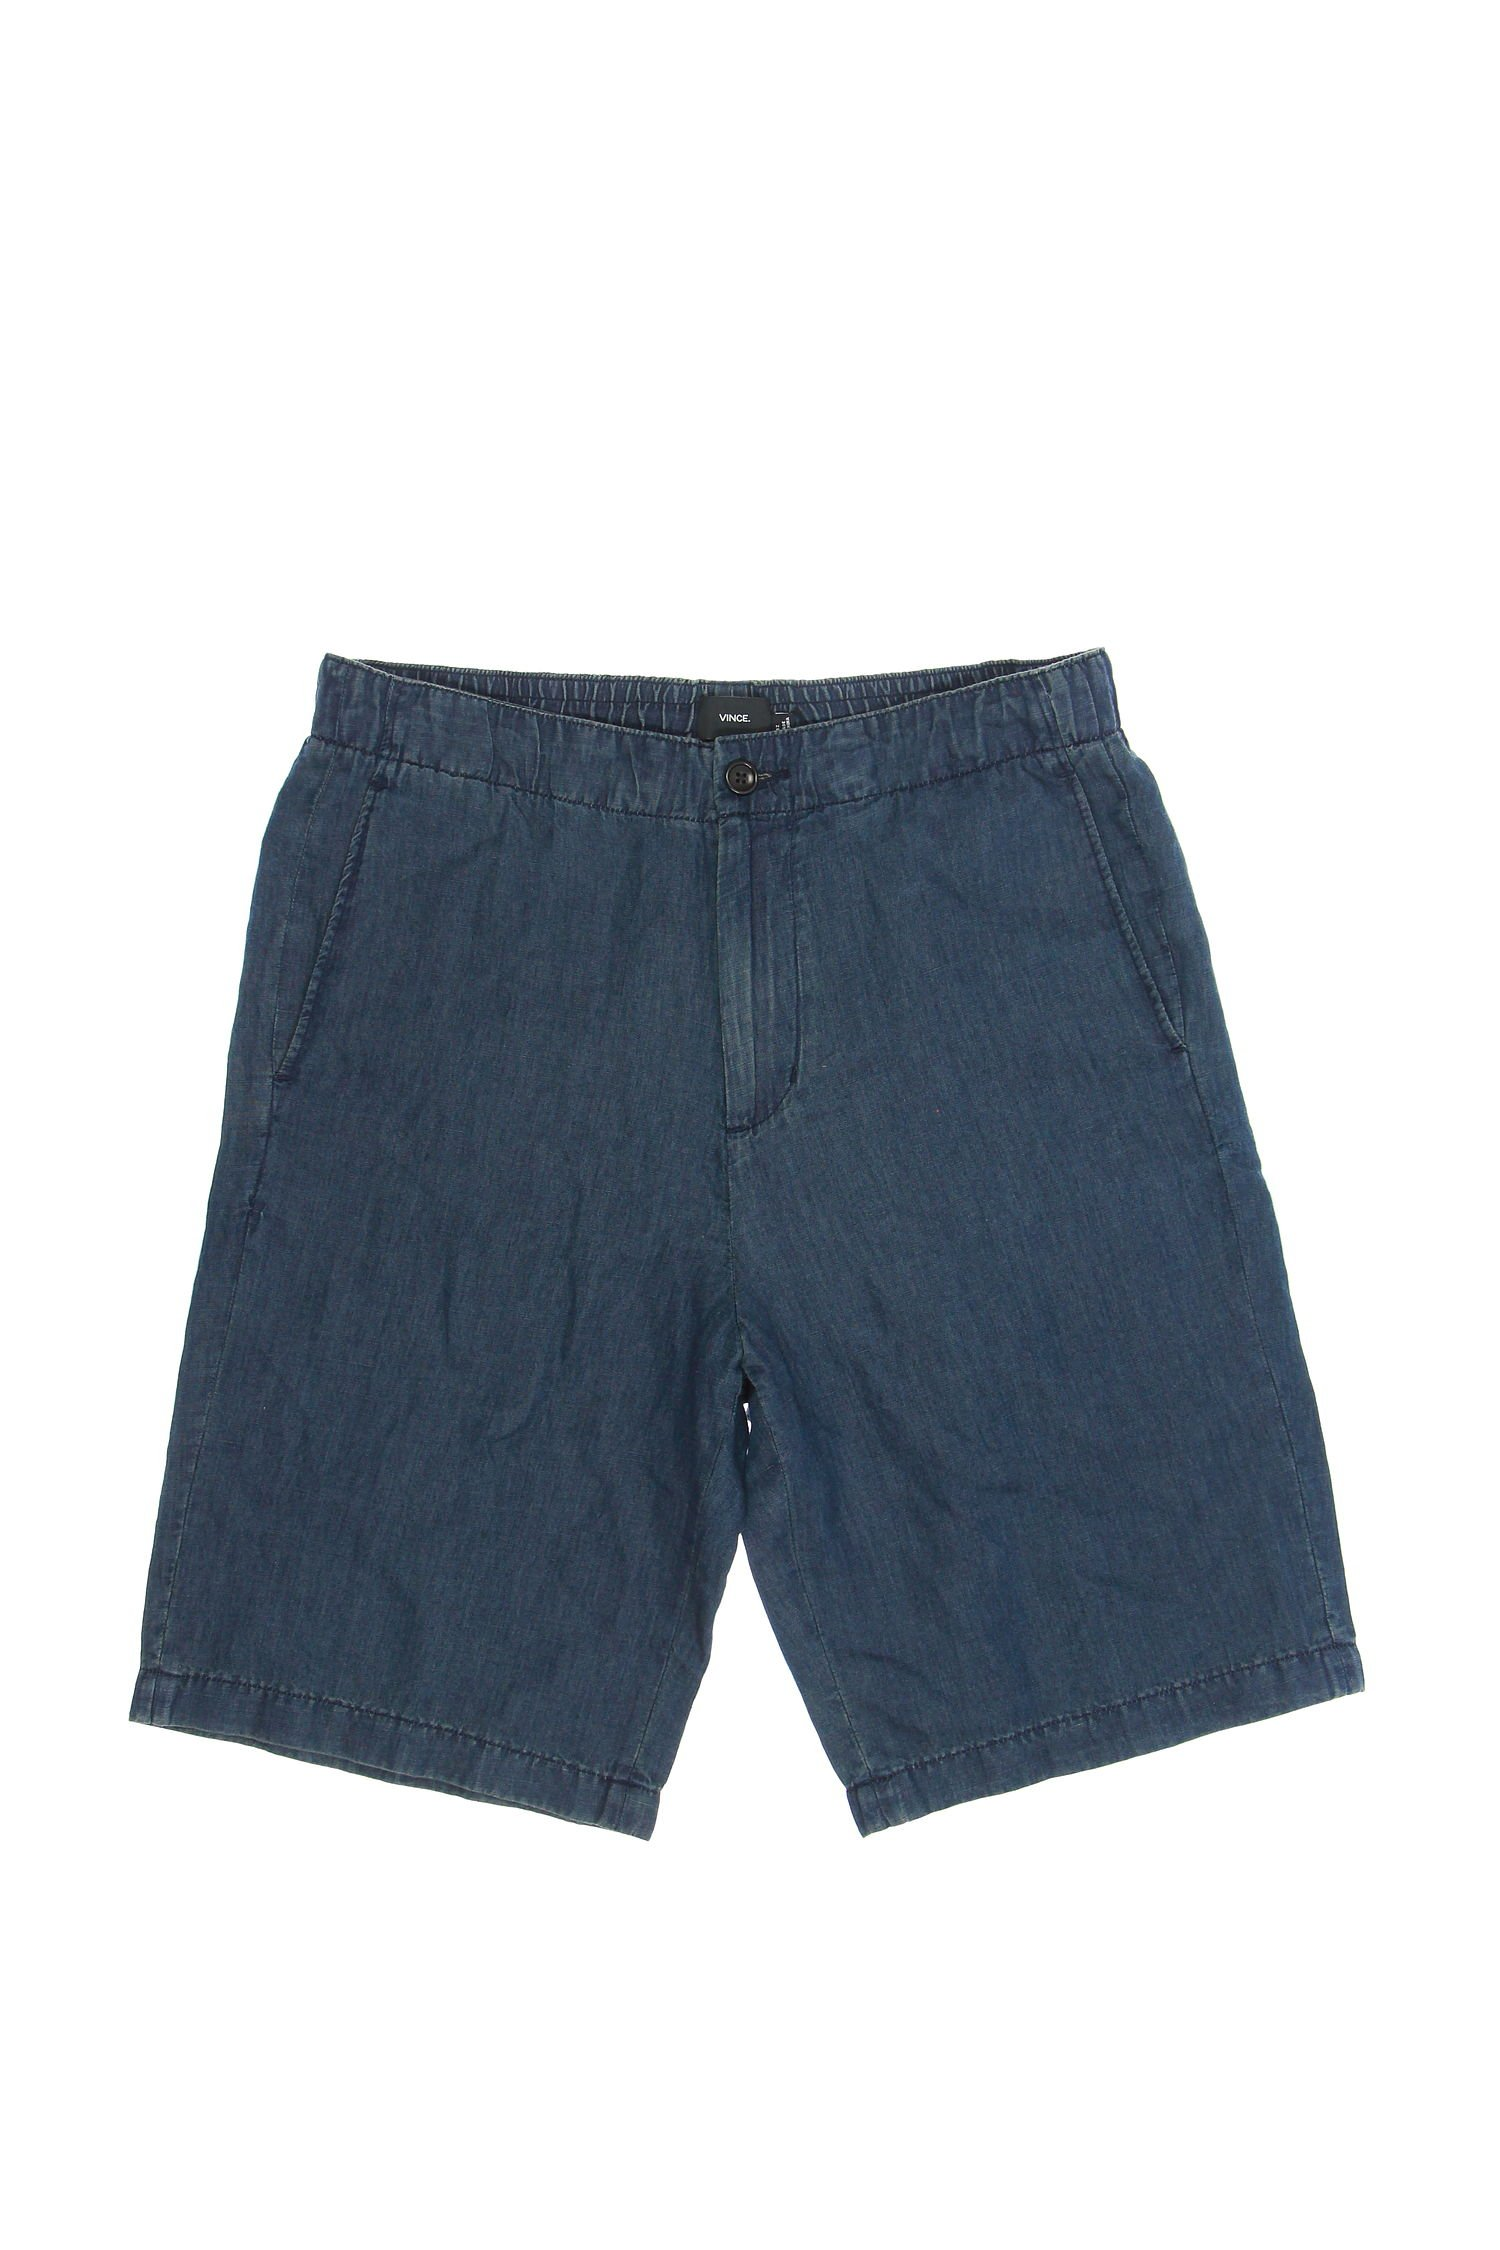 Vince Men's Indigo Shorts, Indigo, 32 by Vince